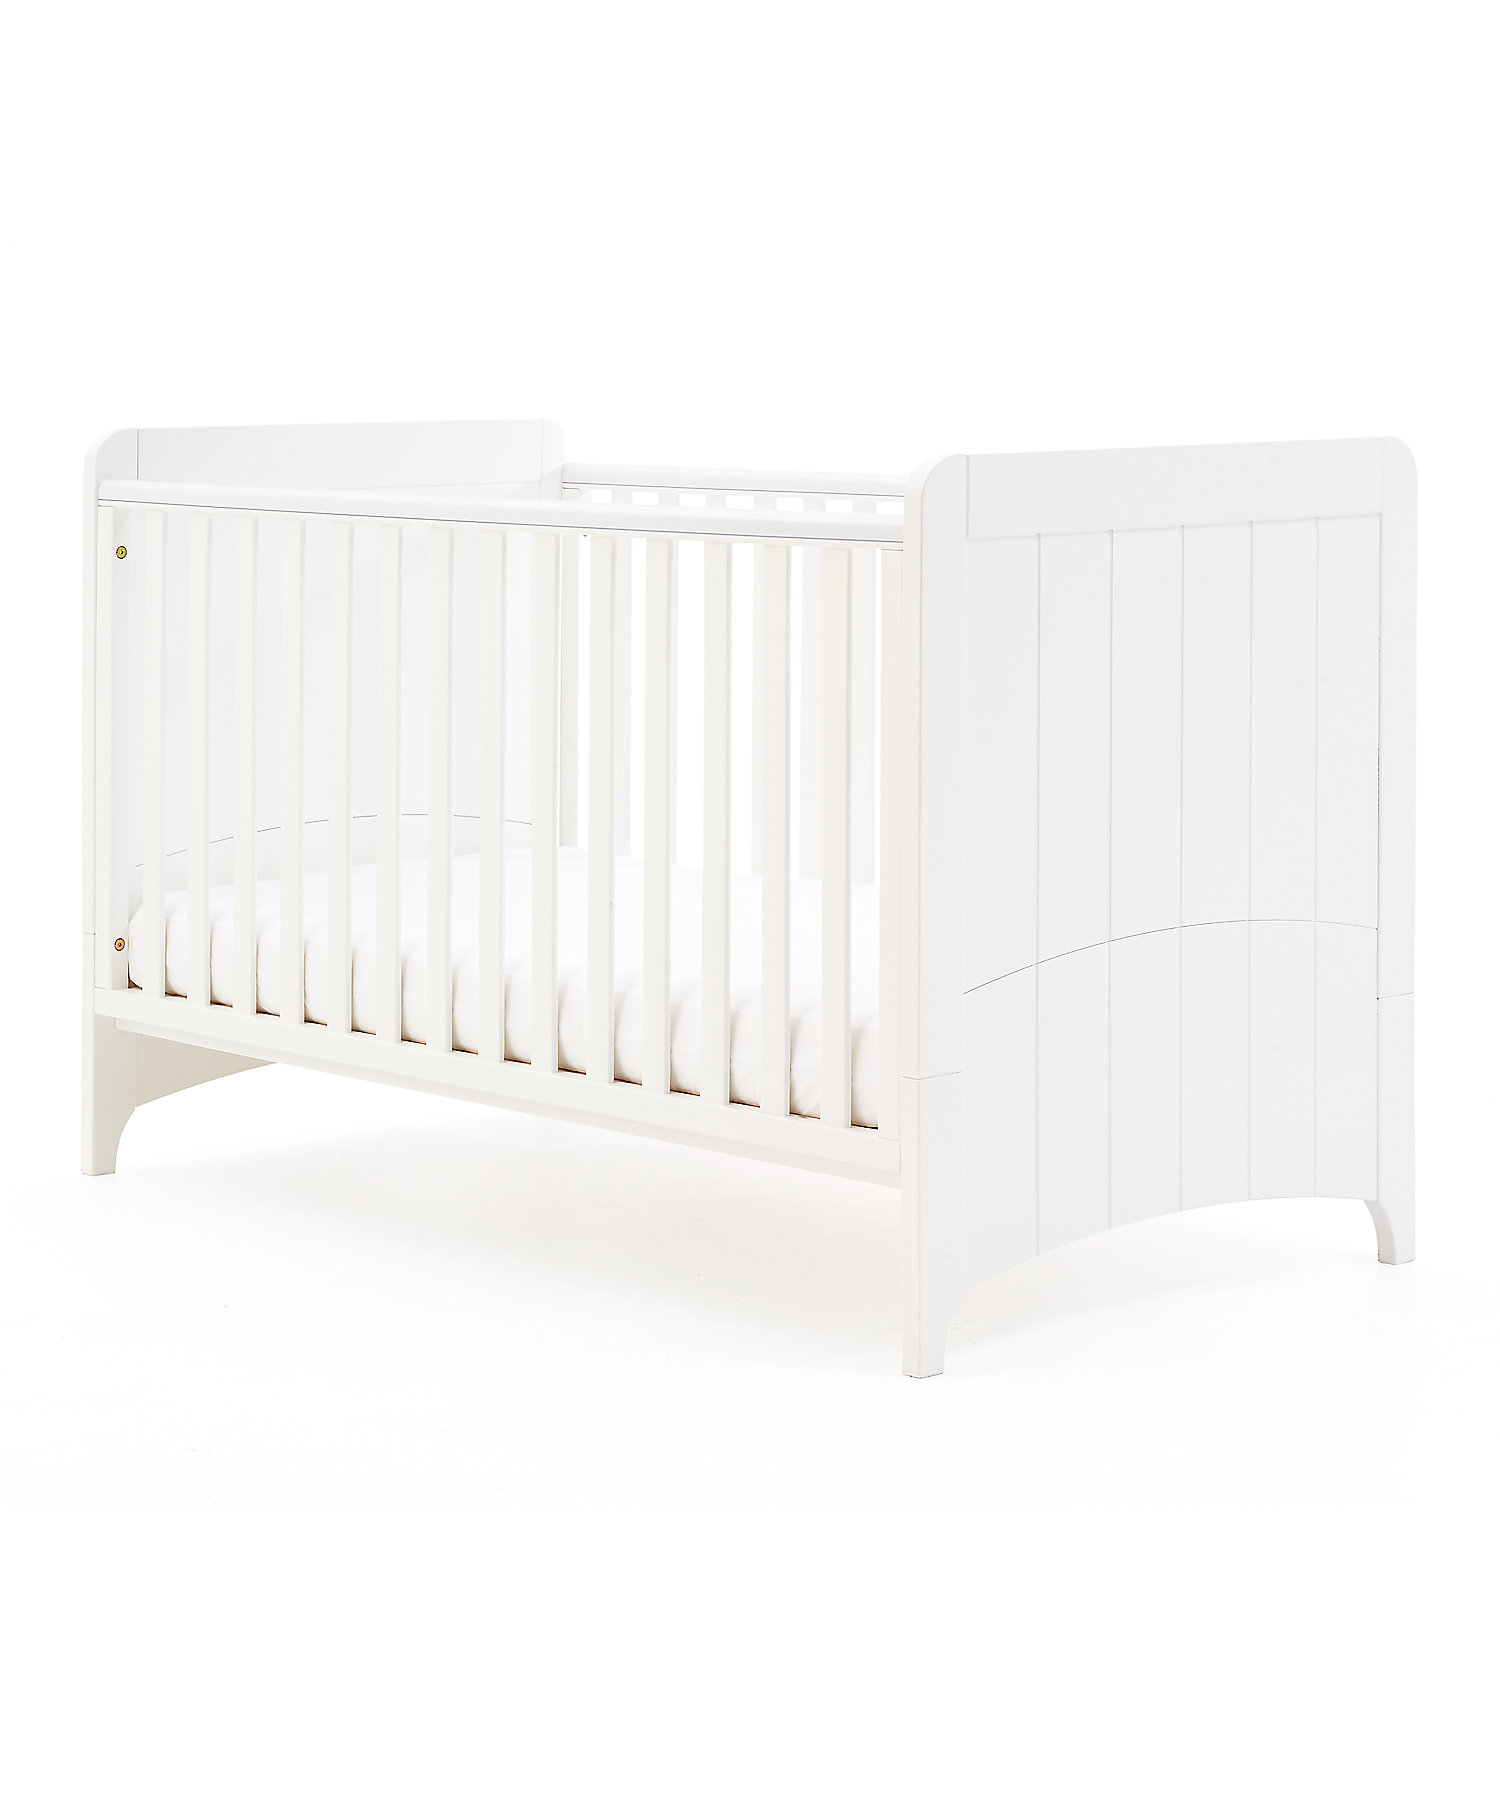 Mothercare | Mothercare Camberley Baby Cot Bed White